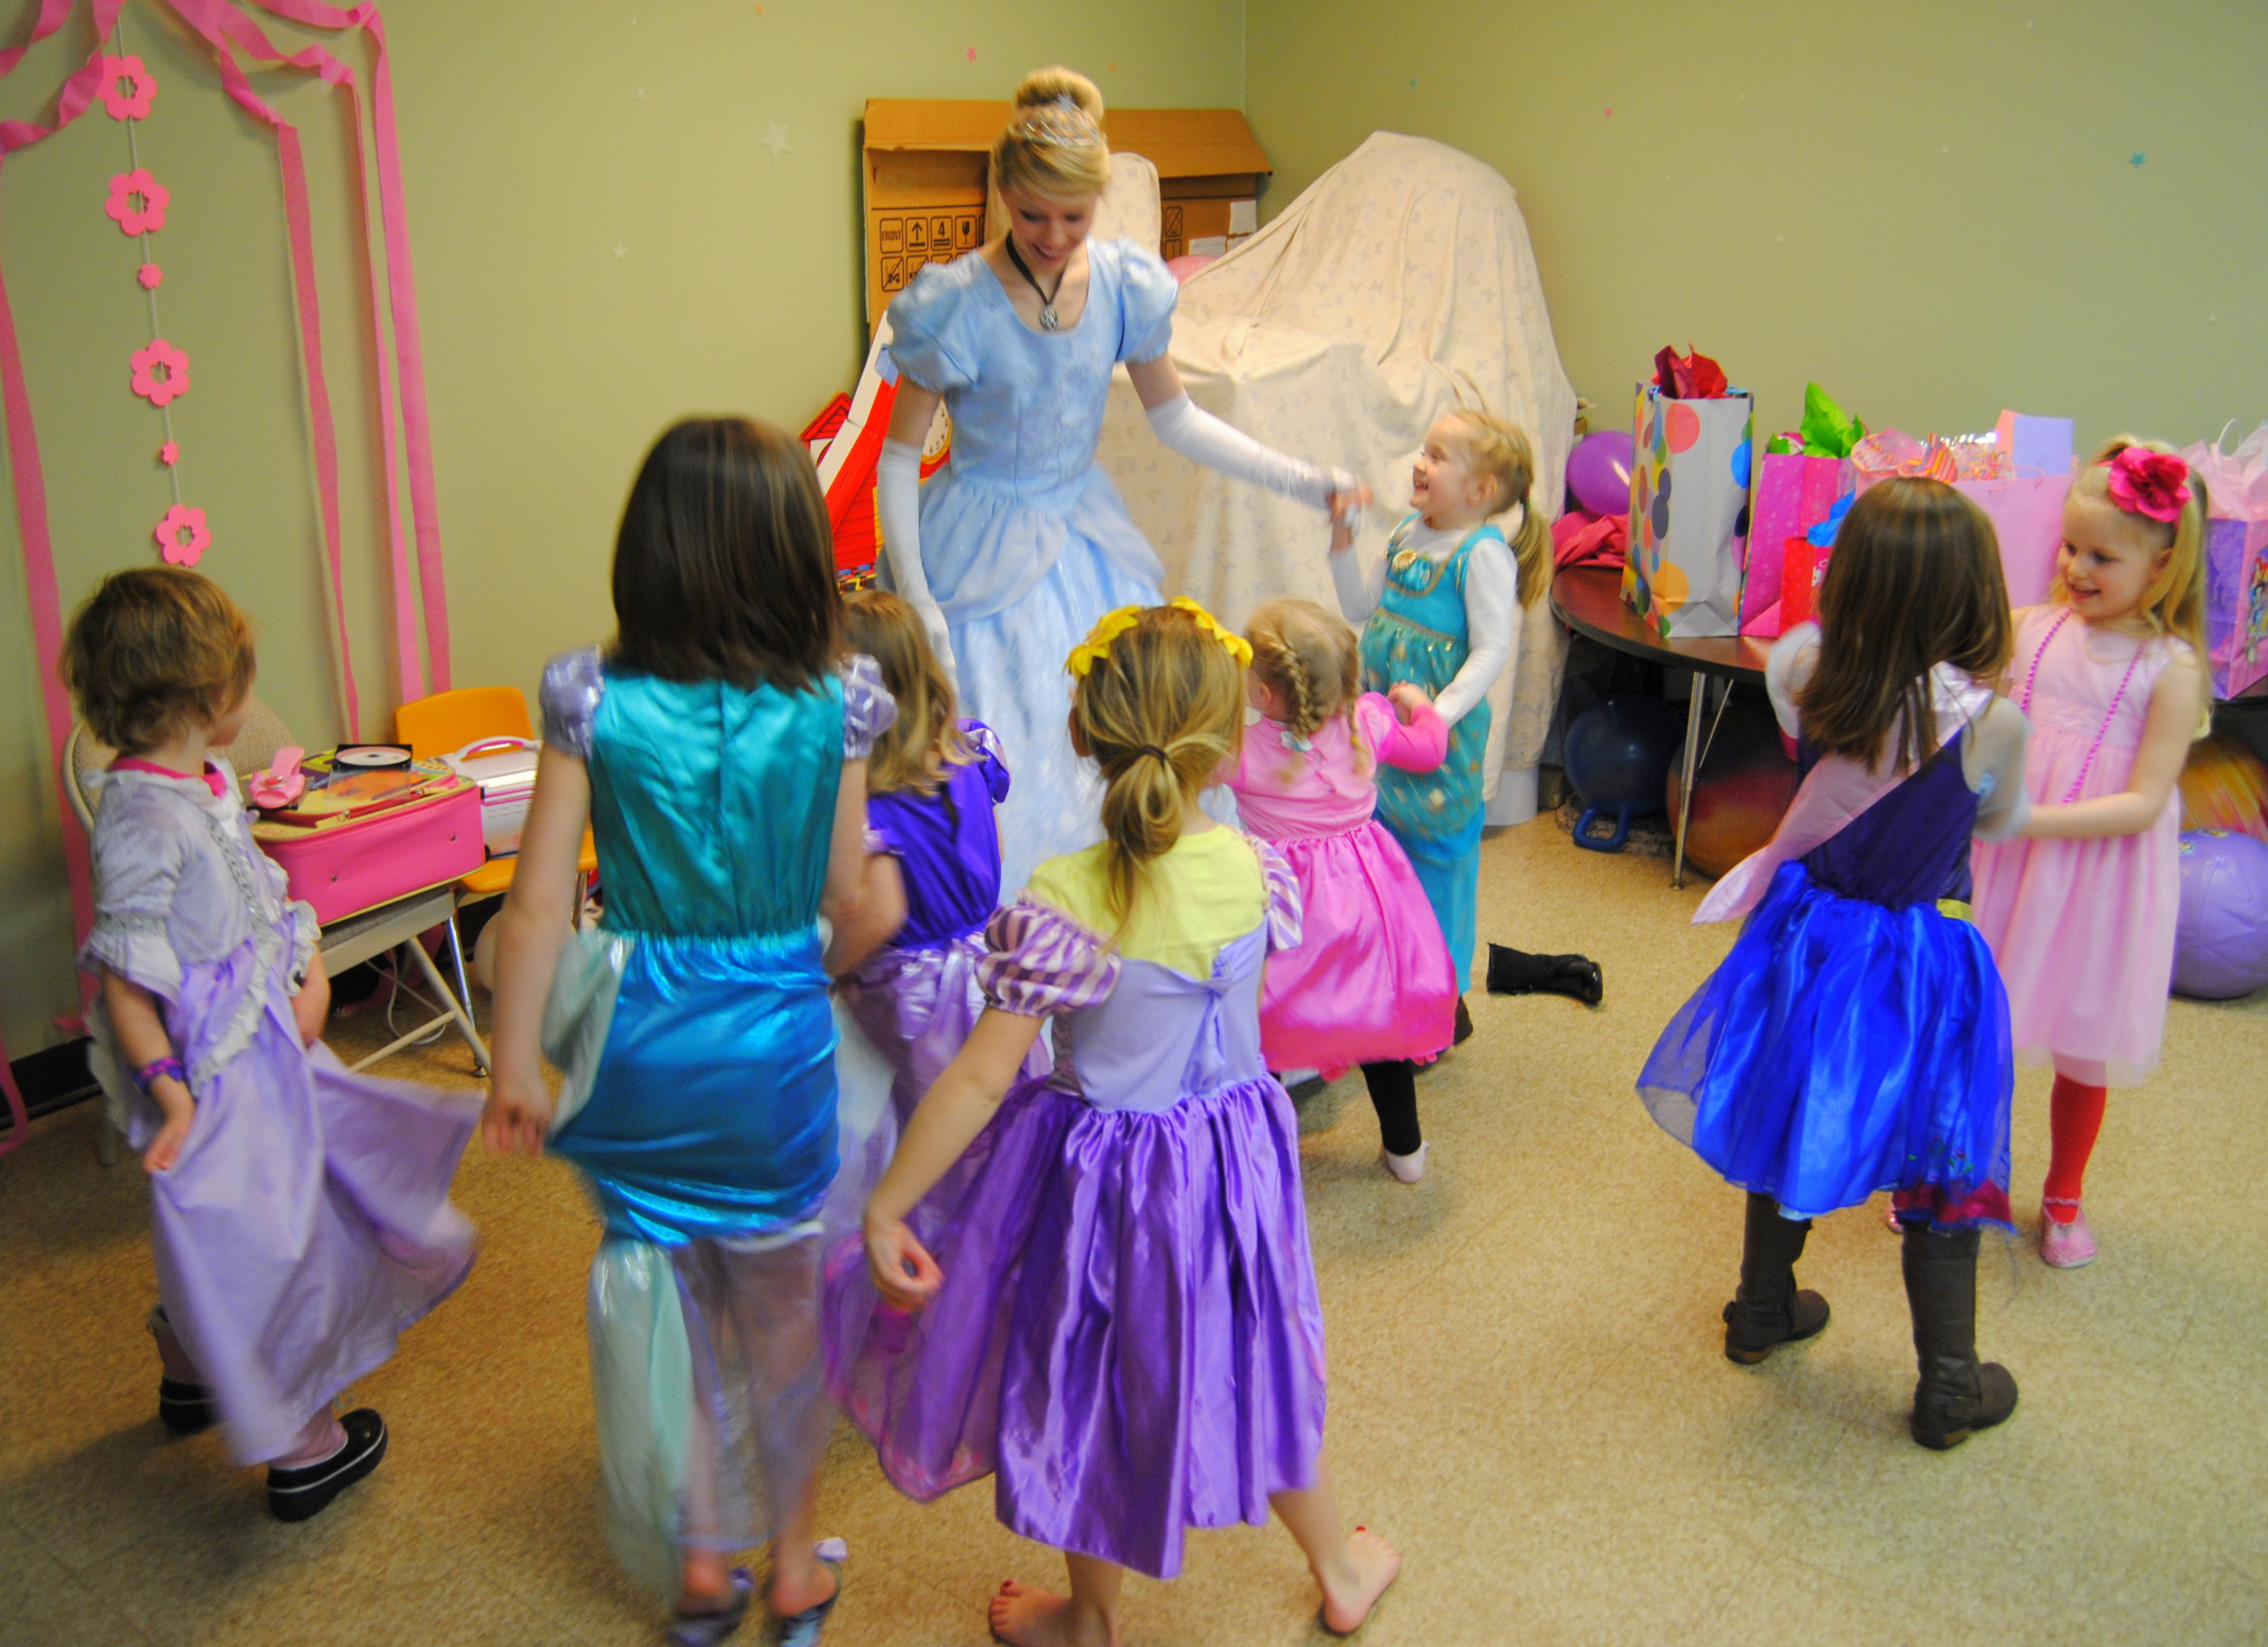 Frozen Birthday Party Ideas Princess birthday party ideas